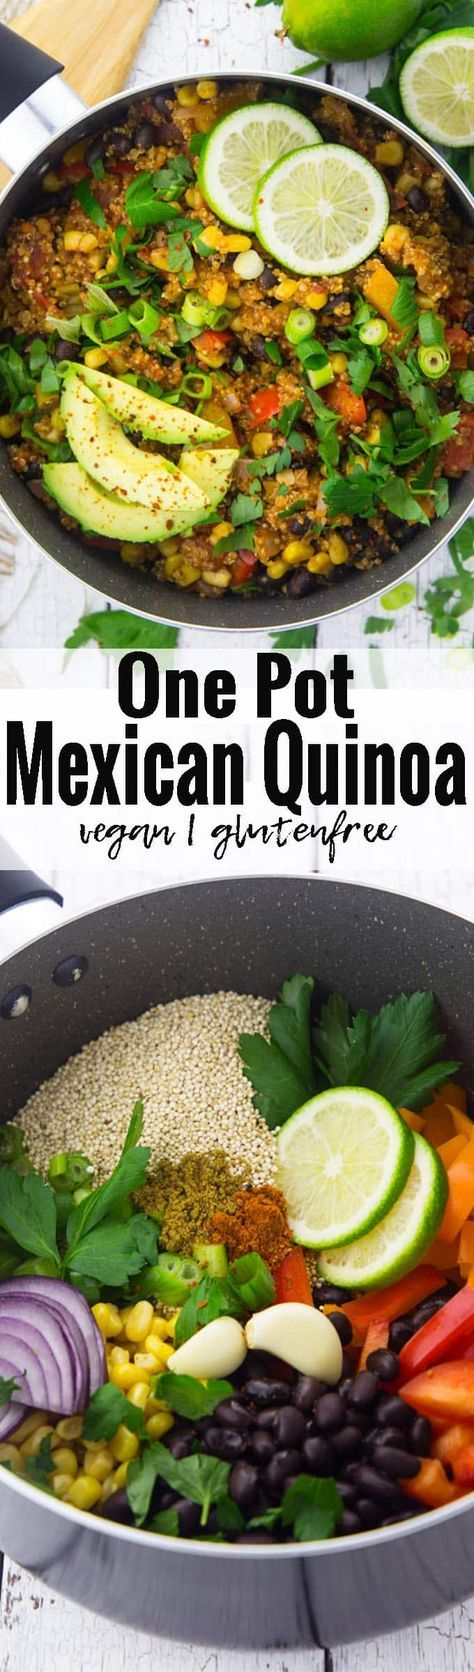 This vegan one pot Mexican quinoa with black beans and corn is one of my favorite vegan weeknight dinners! It's super easy to make, incredibly healthy, and so delicious. Plus, it's packed with protein! Serve it with fresh parsley and avocado for an extra boost of nutrients. Vegan food can be so simple and delicious!! | Find more vegan recipes at veganheaven.org